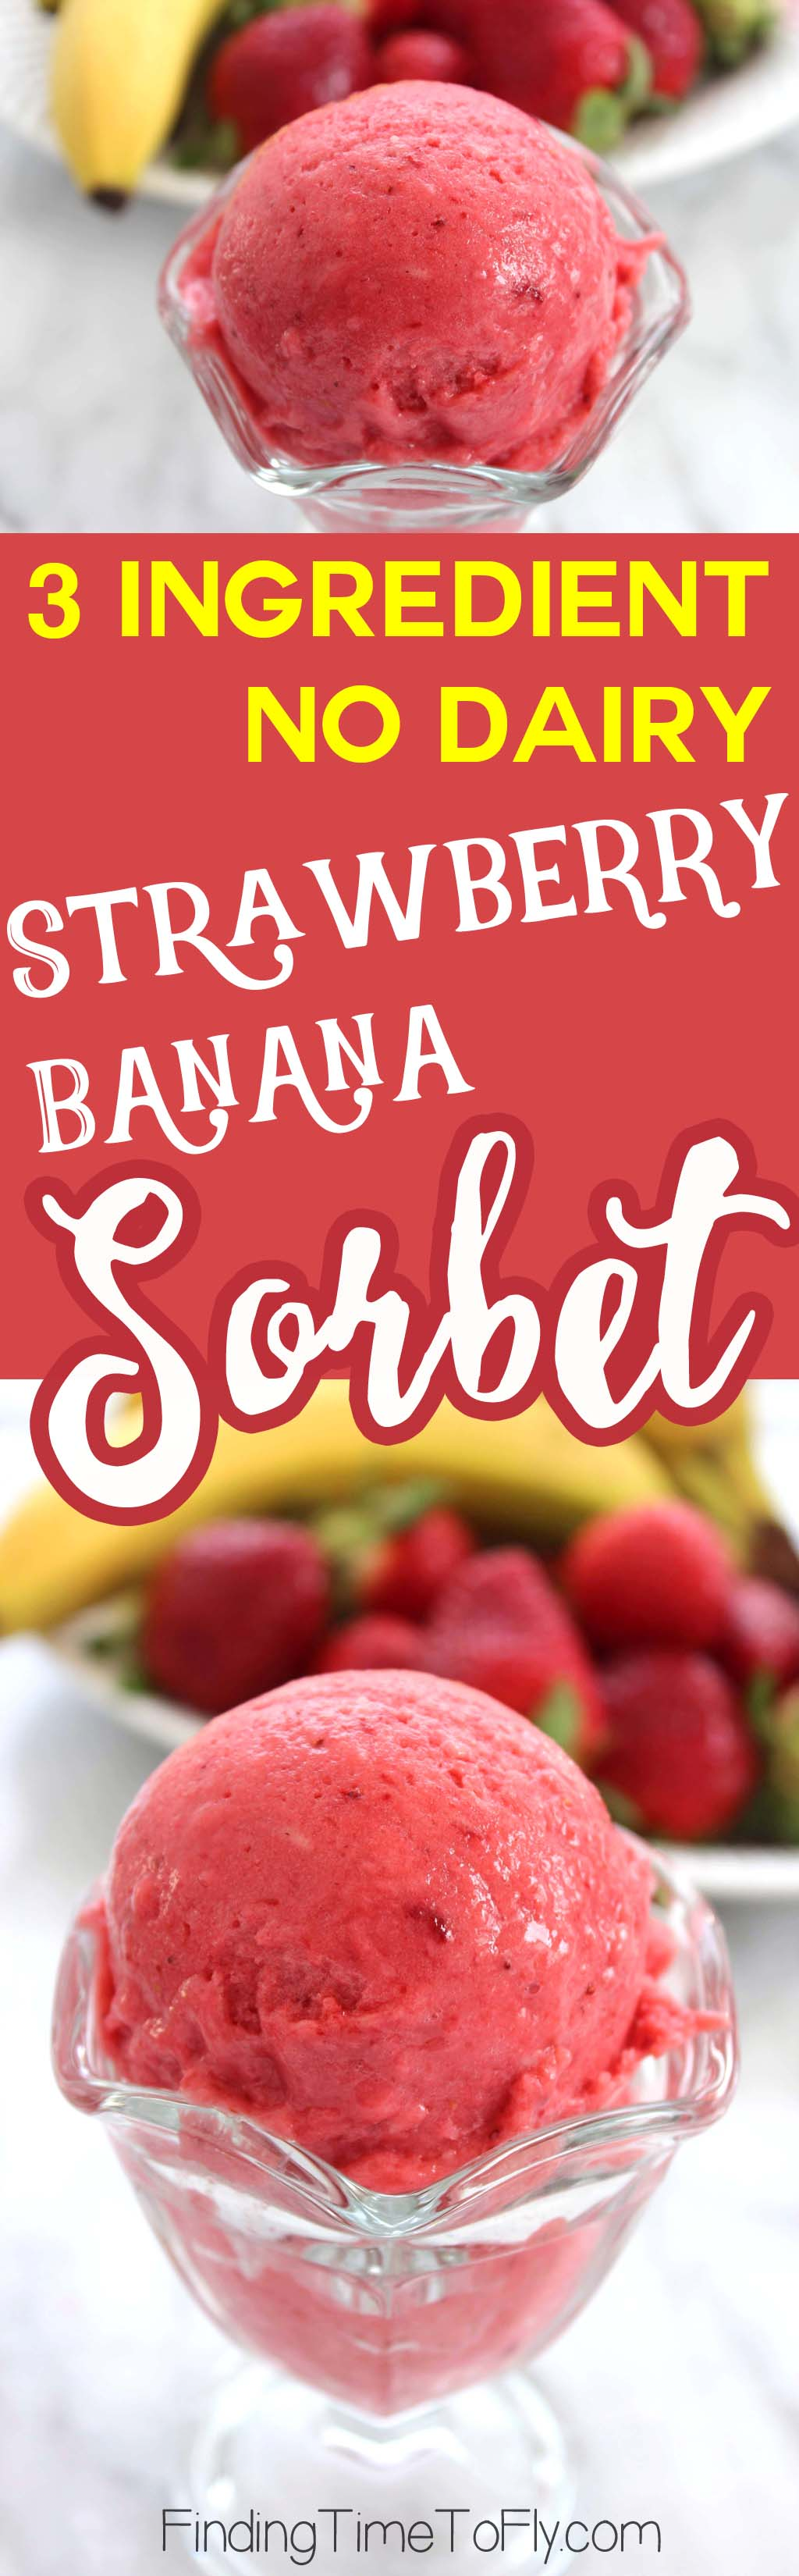 You are just 3 ingredients and one blender away from this delicious No Dairy Strawberry Banana Sorbet!